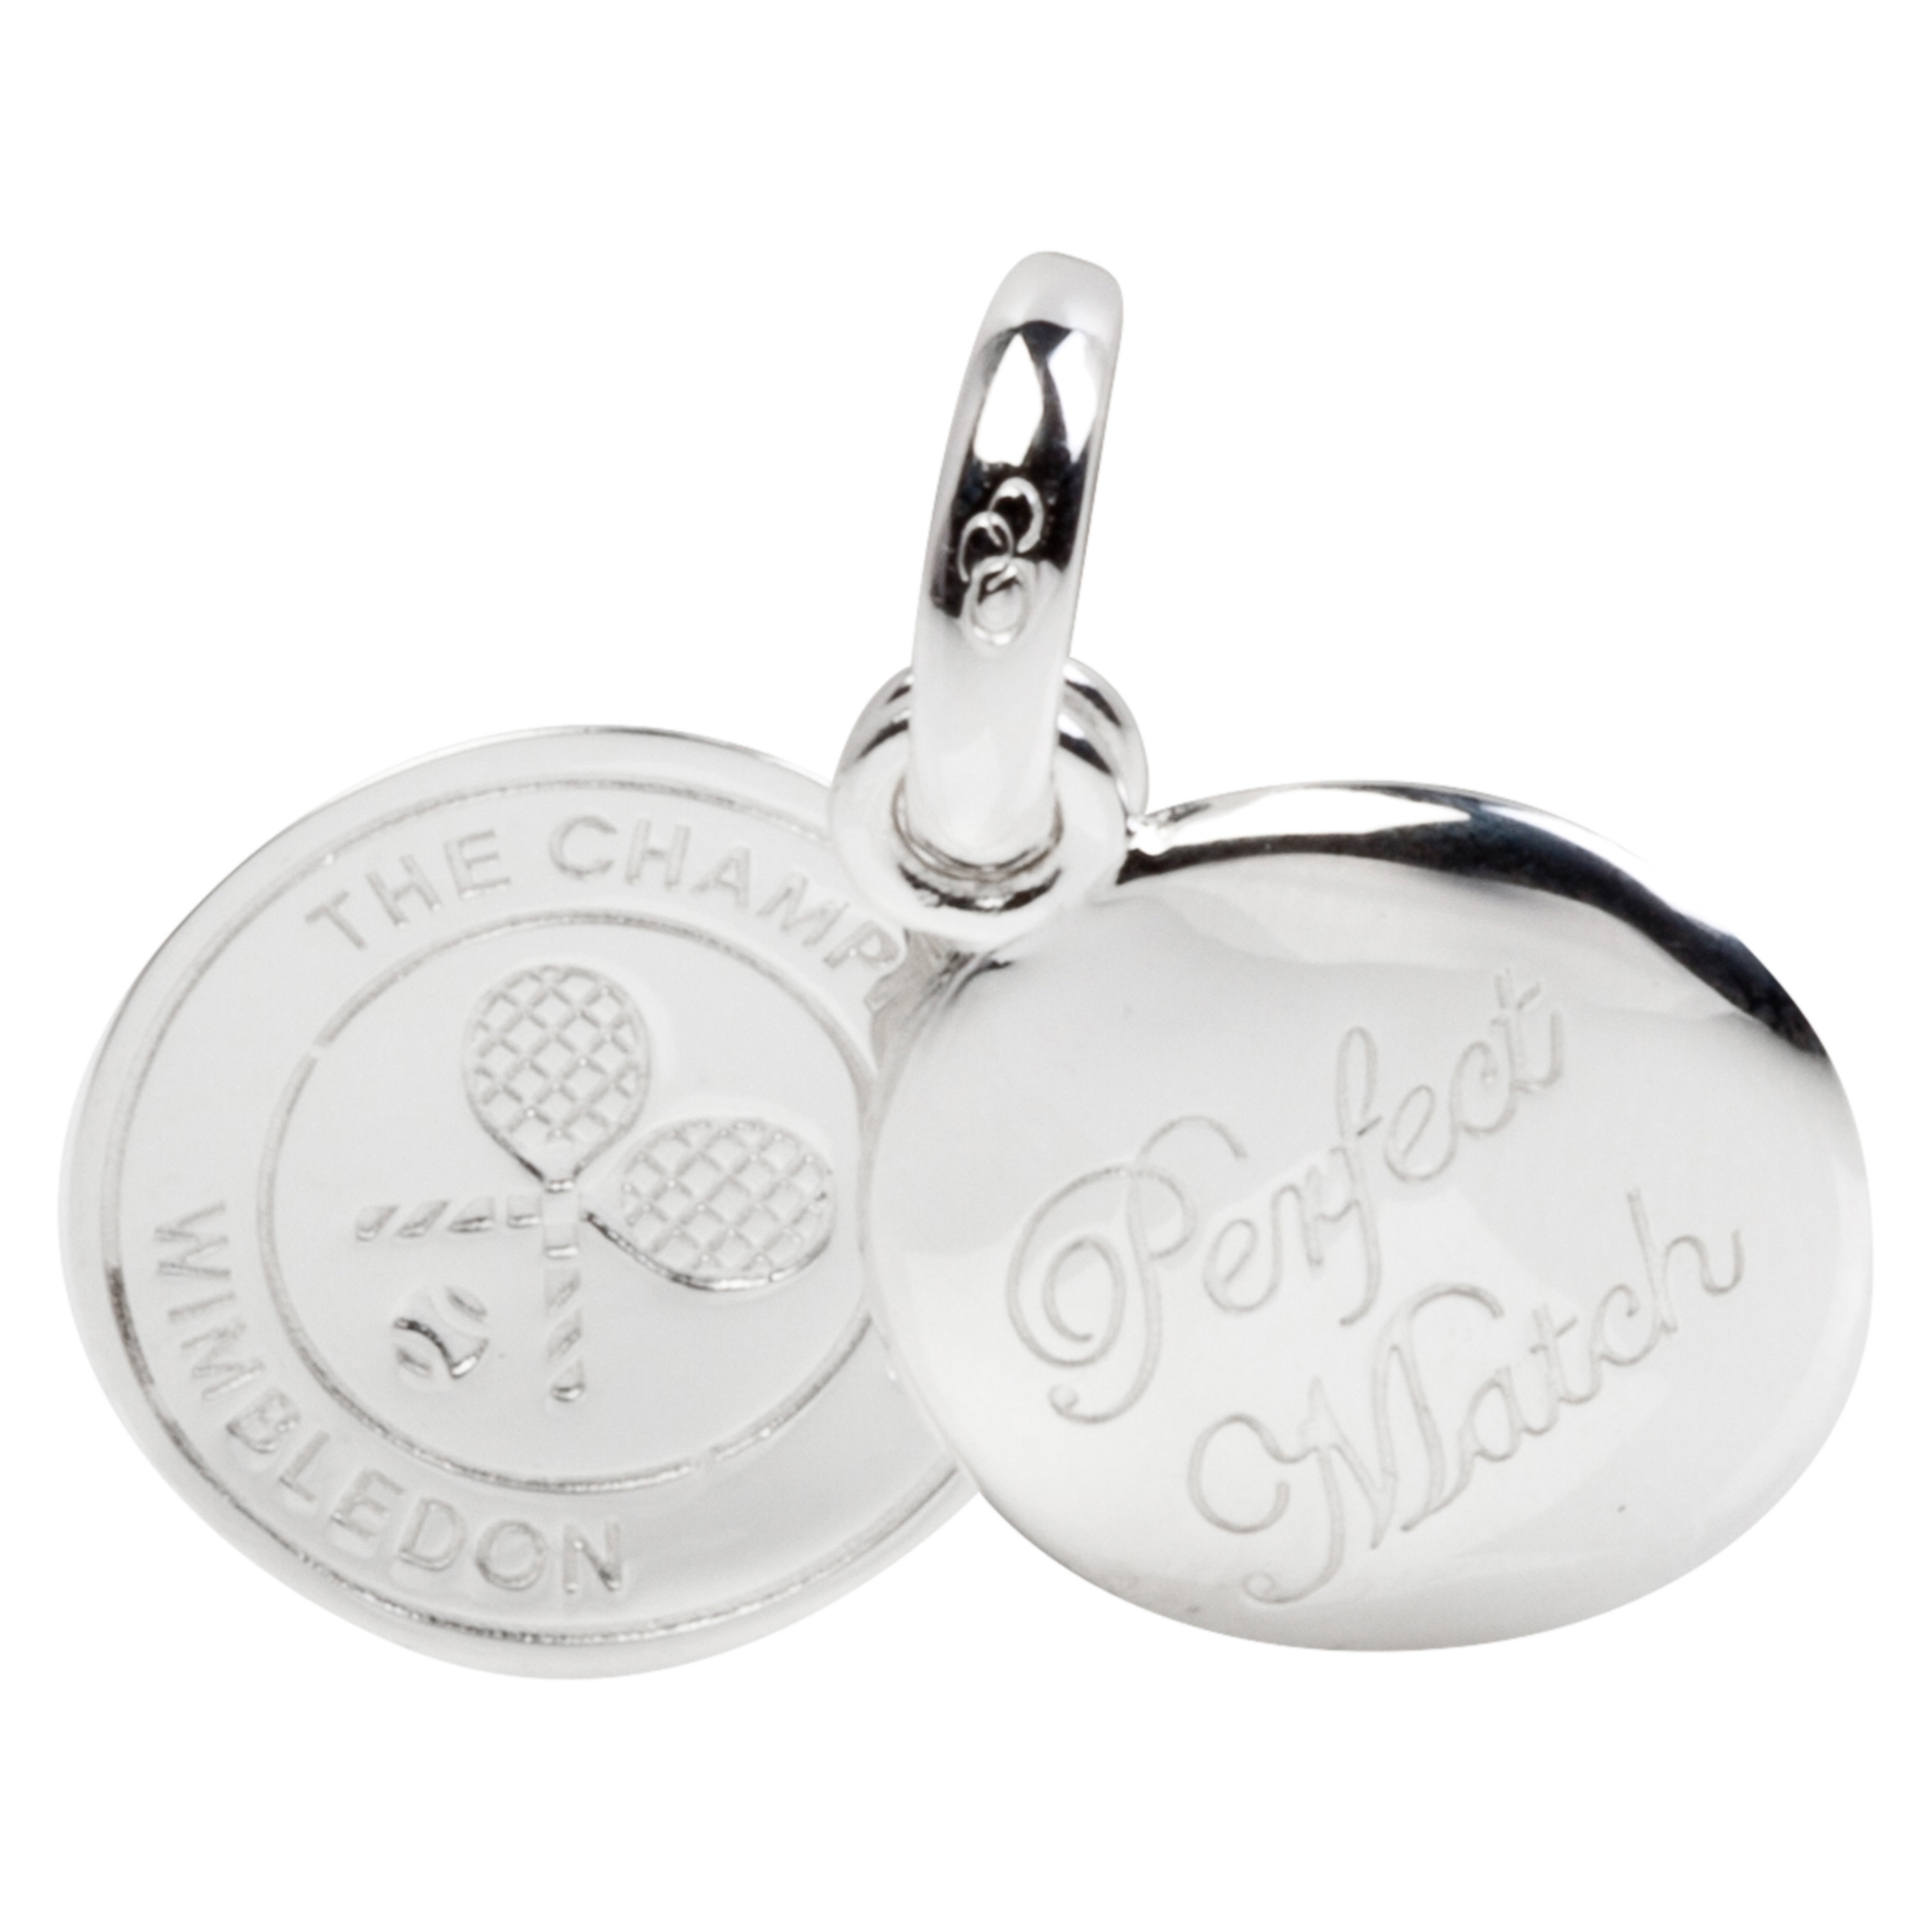 Wimbledon Limited Edition 2014 Charm